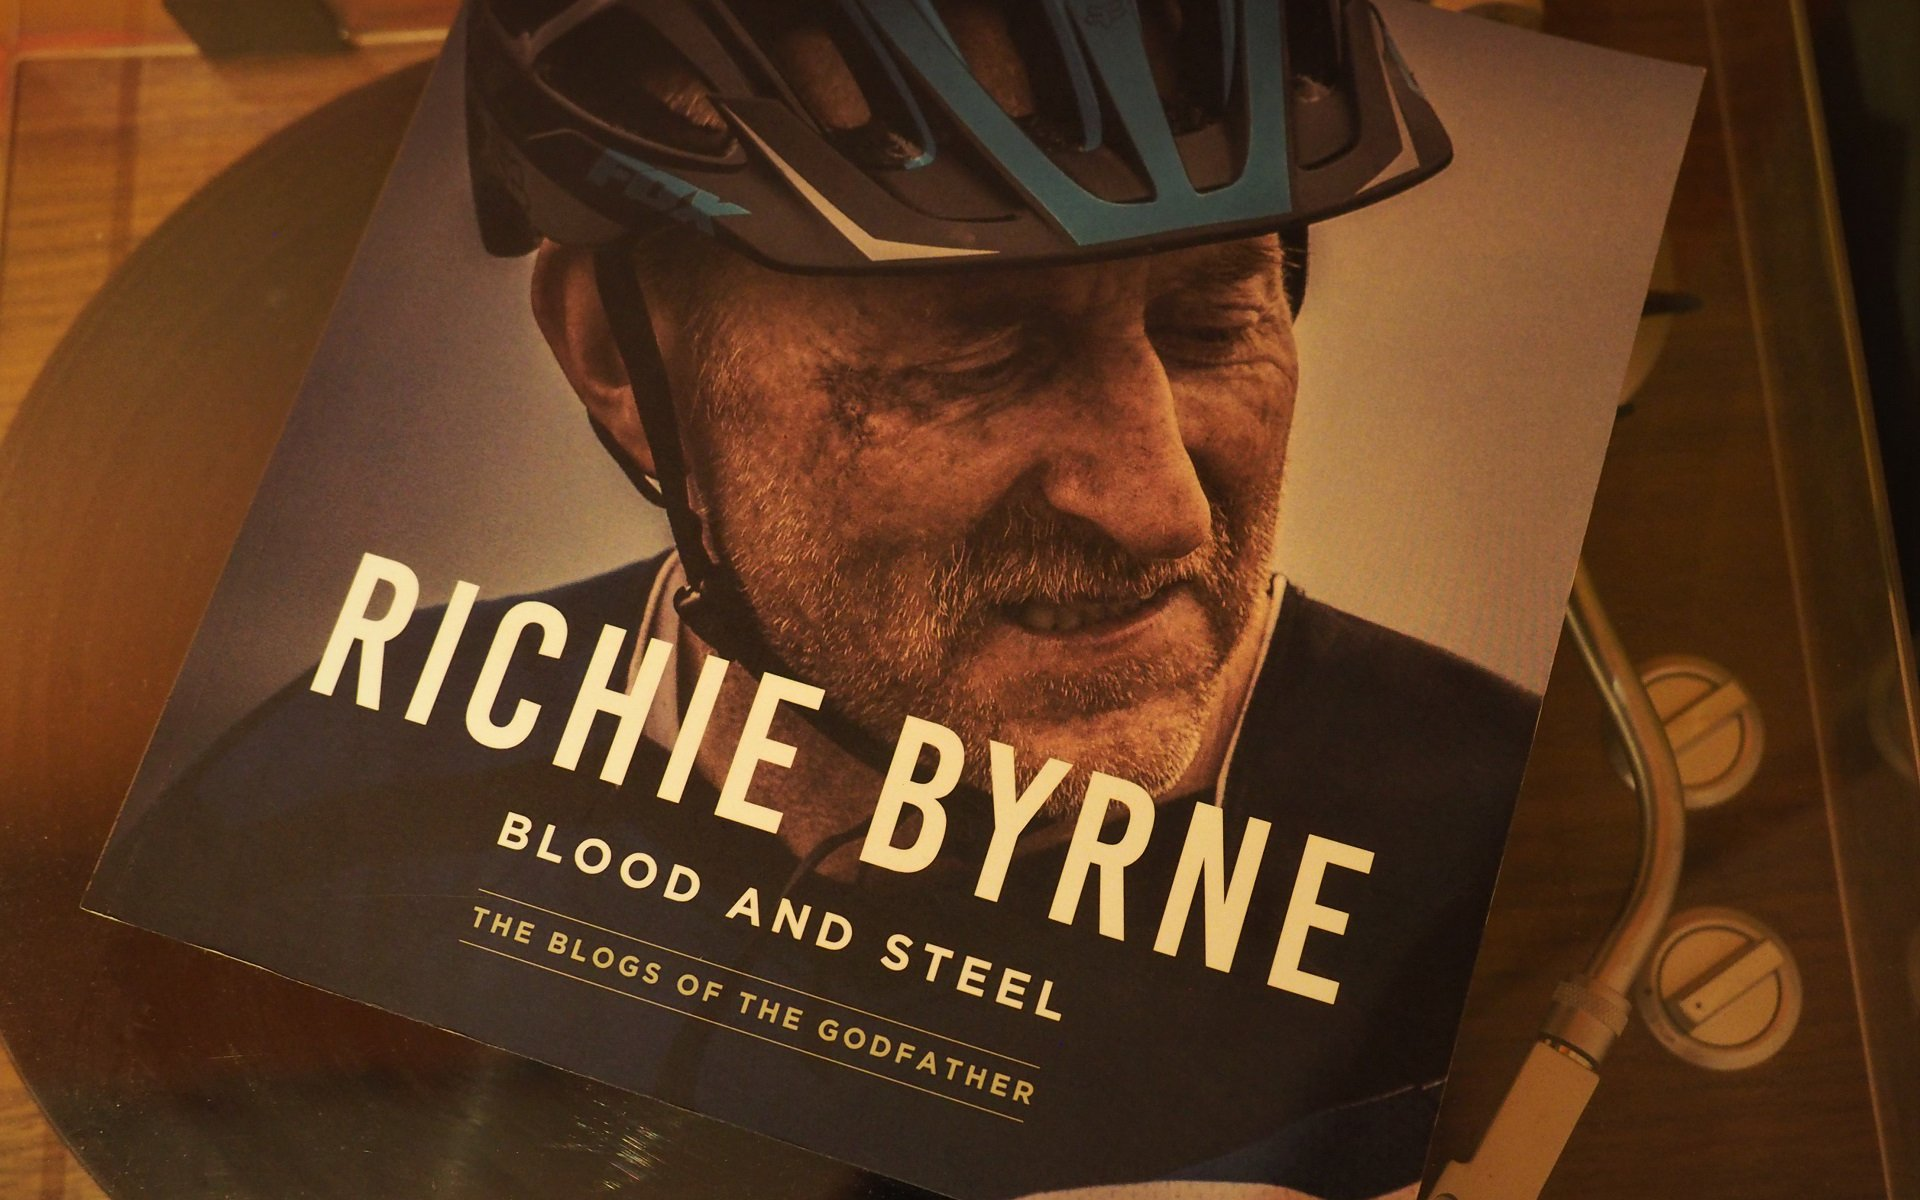 Richie Byrne: Blood And Steel (The Blogs Of The Godfather)